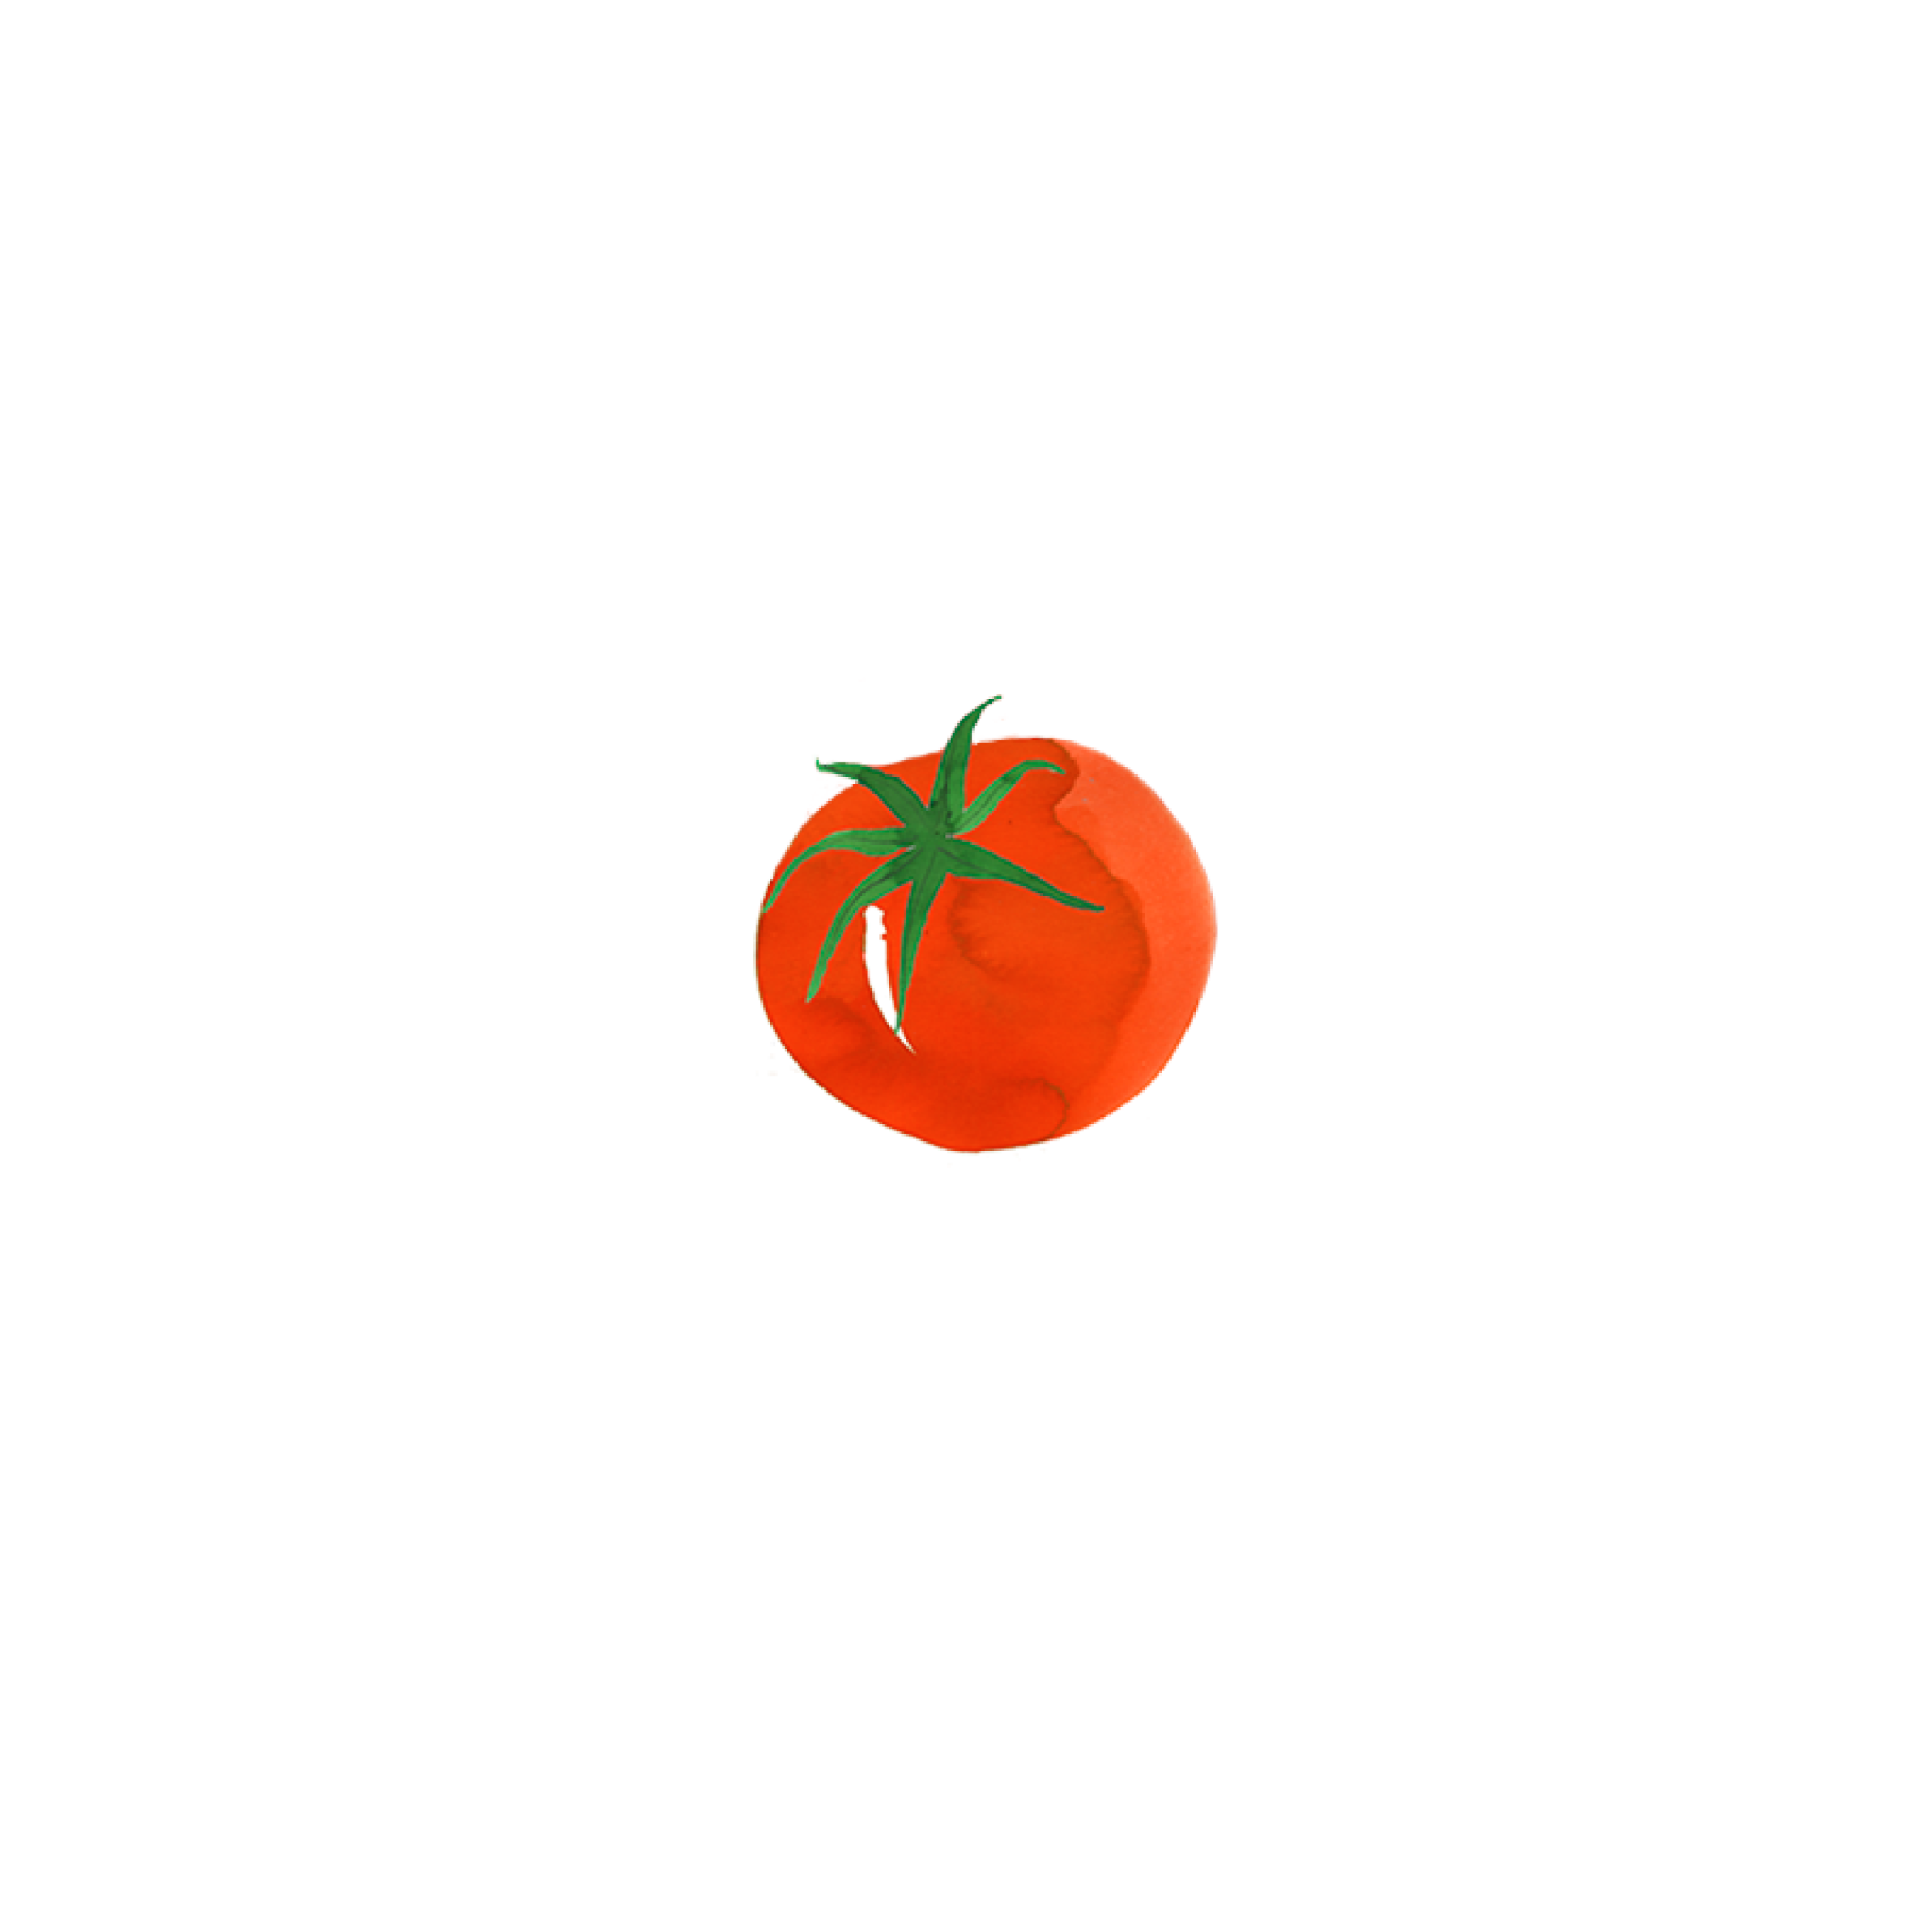 tomate_groß.png